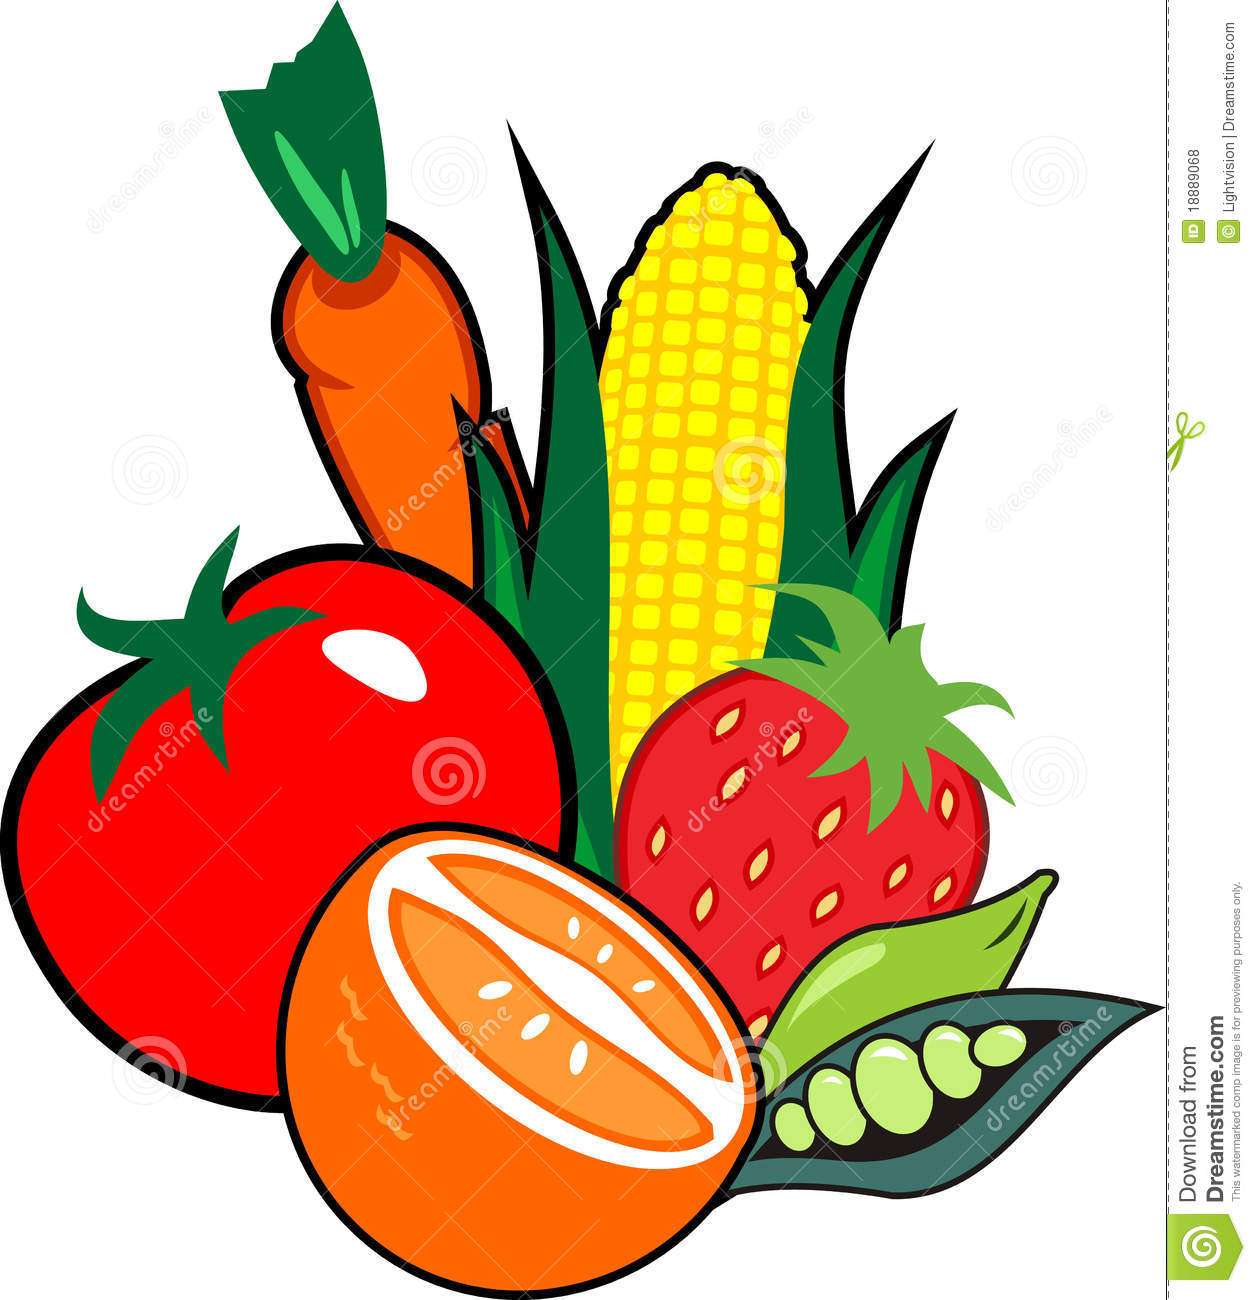 Clipart Images Of Fruits And Vegetables.